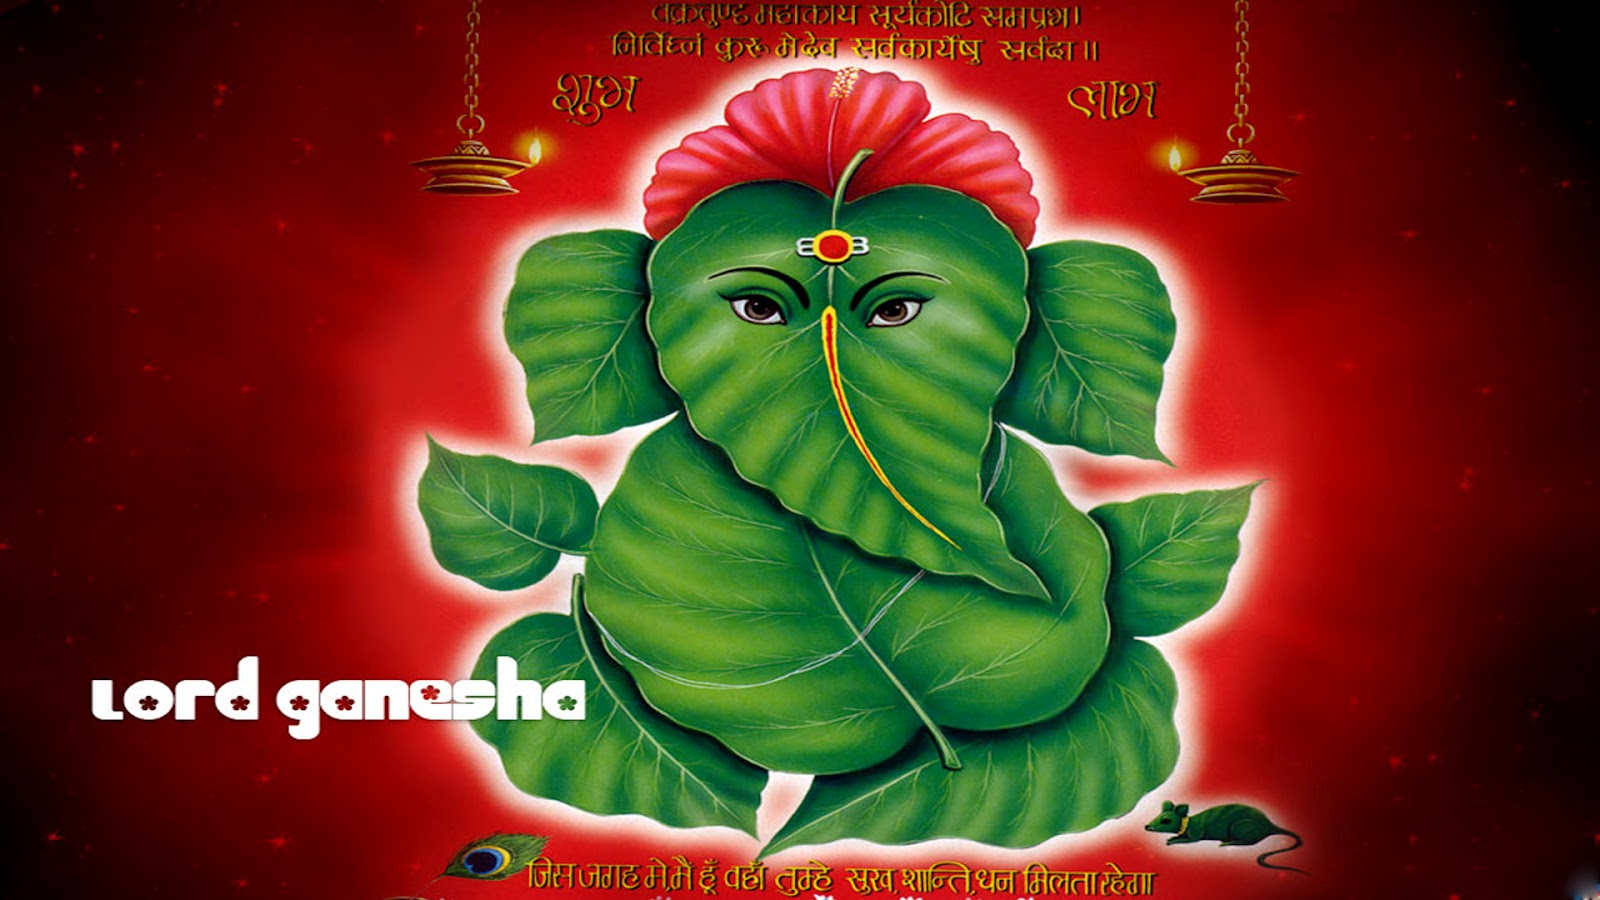 Hd wallpaper ganesh - Letest Hd Lord Ganesh Wallpaper Heppy Vinayak Chaturthi Lord Ganesh Desktop Backgrounds Lord